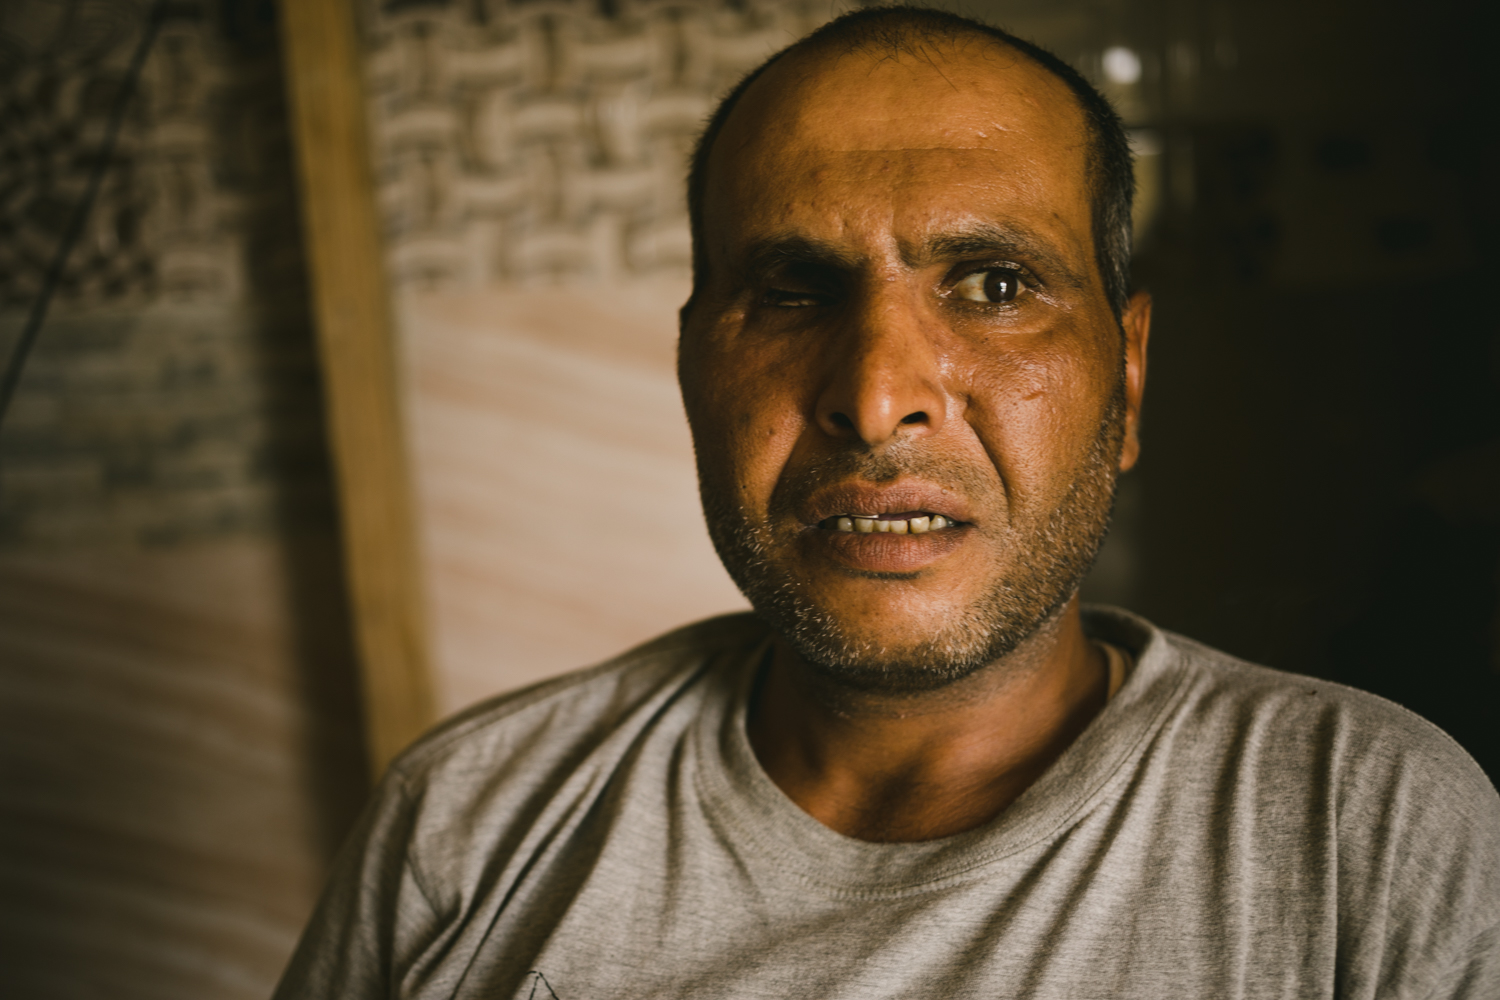 Mazed Tahab, a 39-year-old refugee, lost his eye when a firefight broke out in his neighborhood. He was found injured, and was held in captivity for over a year and deprived of medical treatment. He now tries to find work as a handyman to help his family survive in Lebanon.